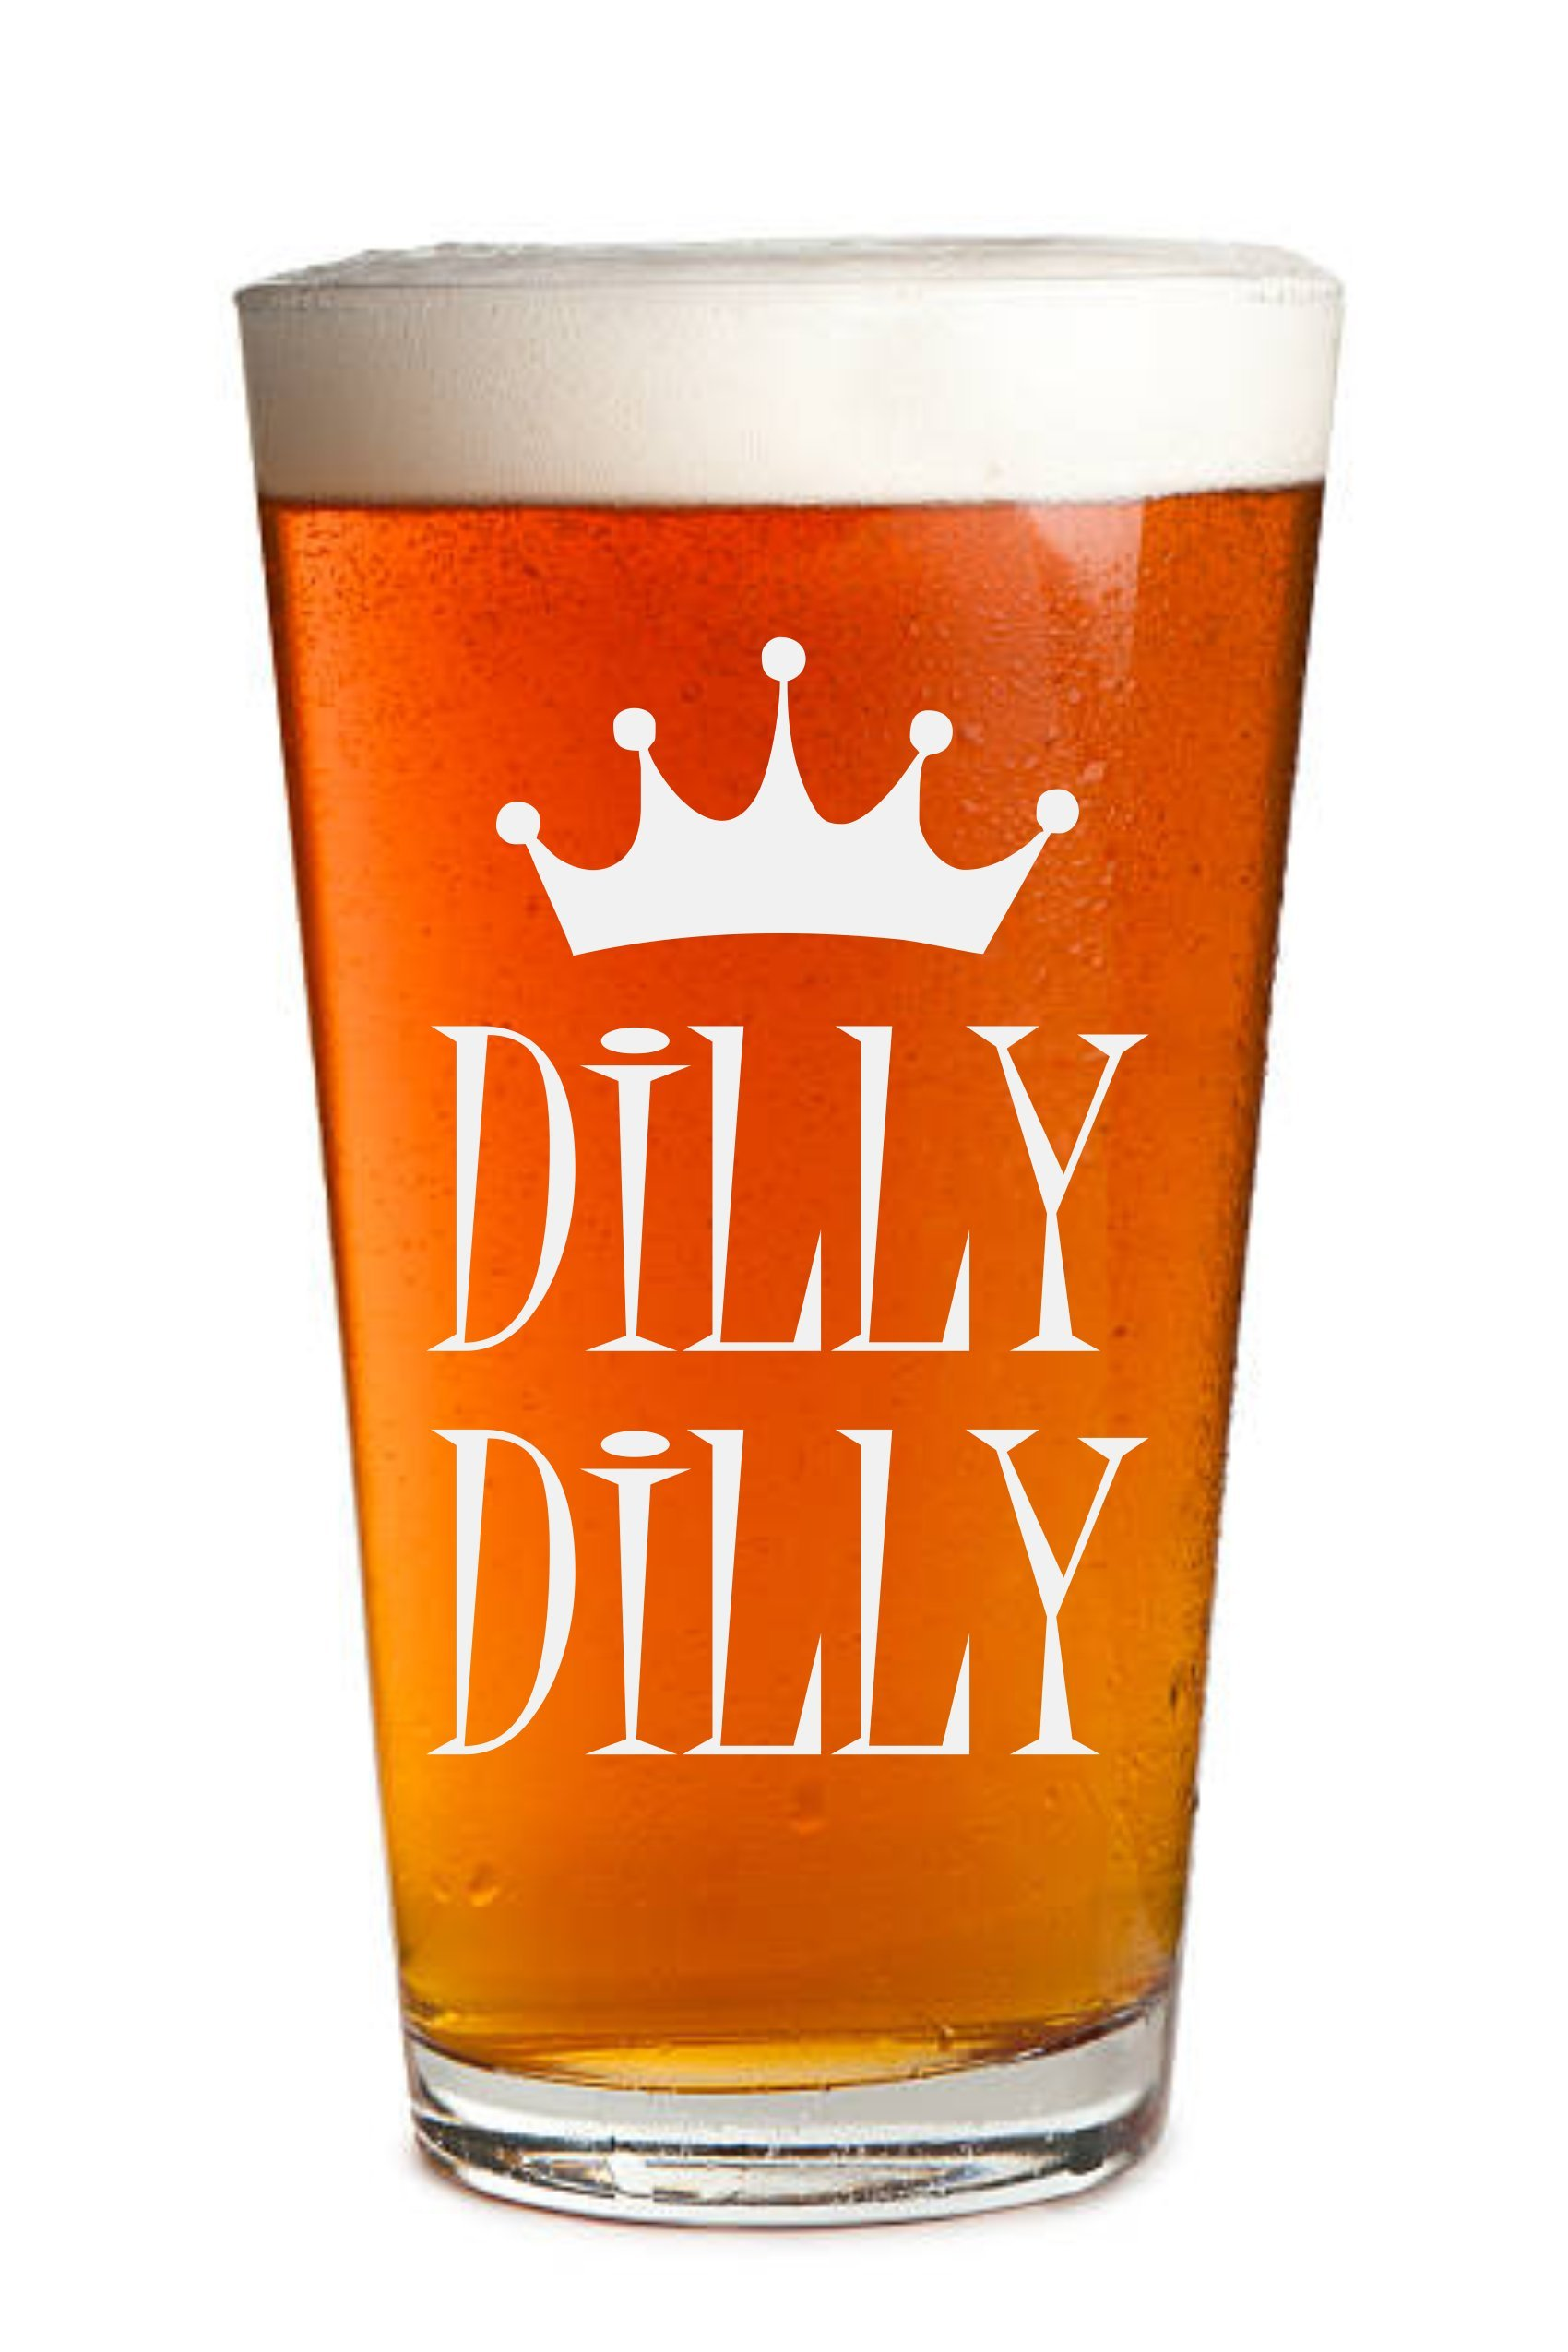 Sandblast Creations Dilly Dilly - Engraved Beer Glass - 16oz Clear Pint Glass - Great for a Bud - Light Humor - Funny Gifts for Men and Women